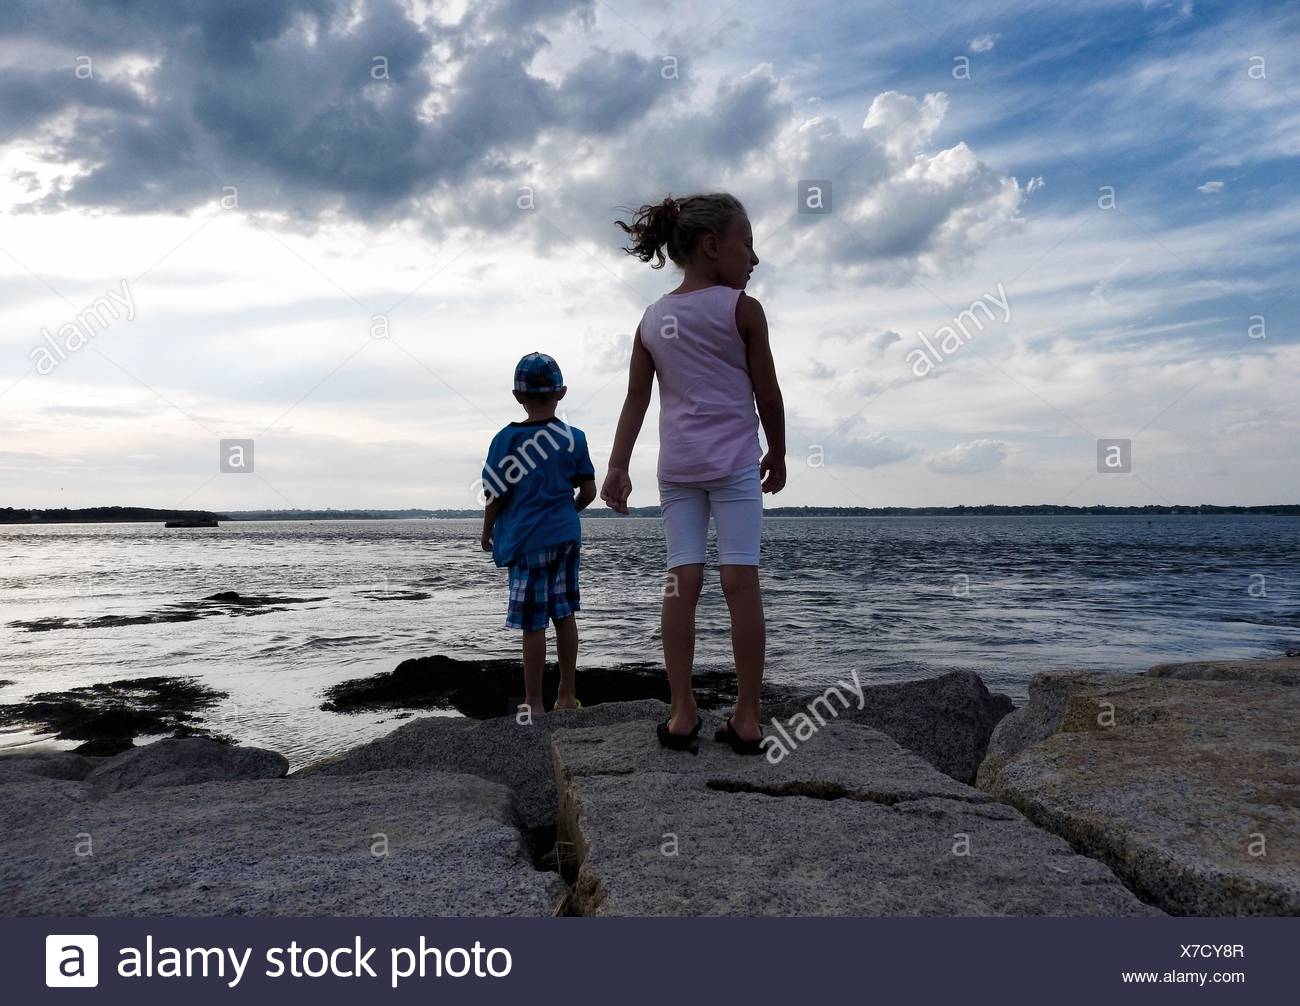 Rear View Of Siblings Standing On Rocks At Seaside Against Cloudy Sky - Stock Image